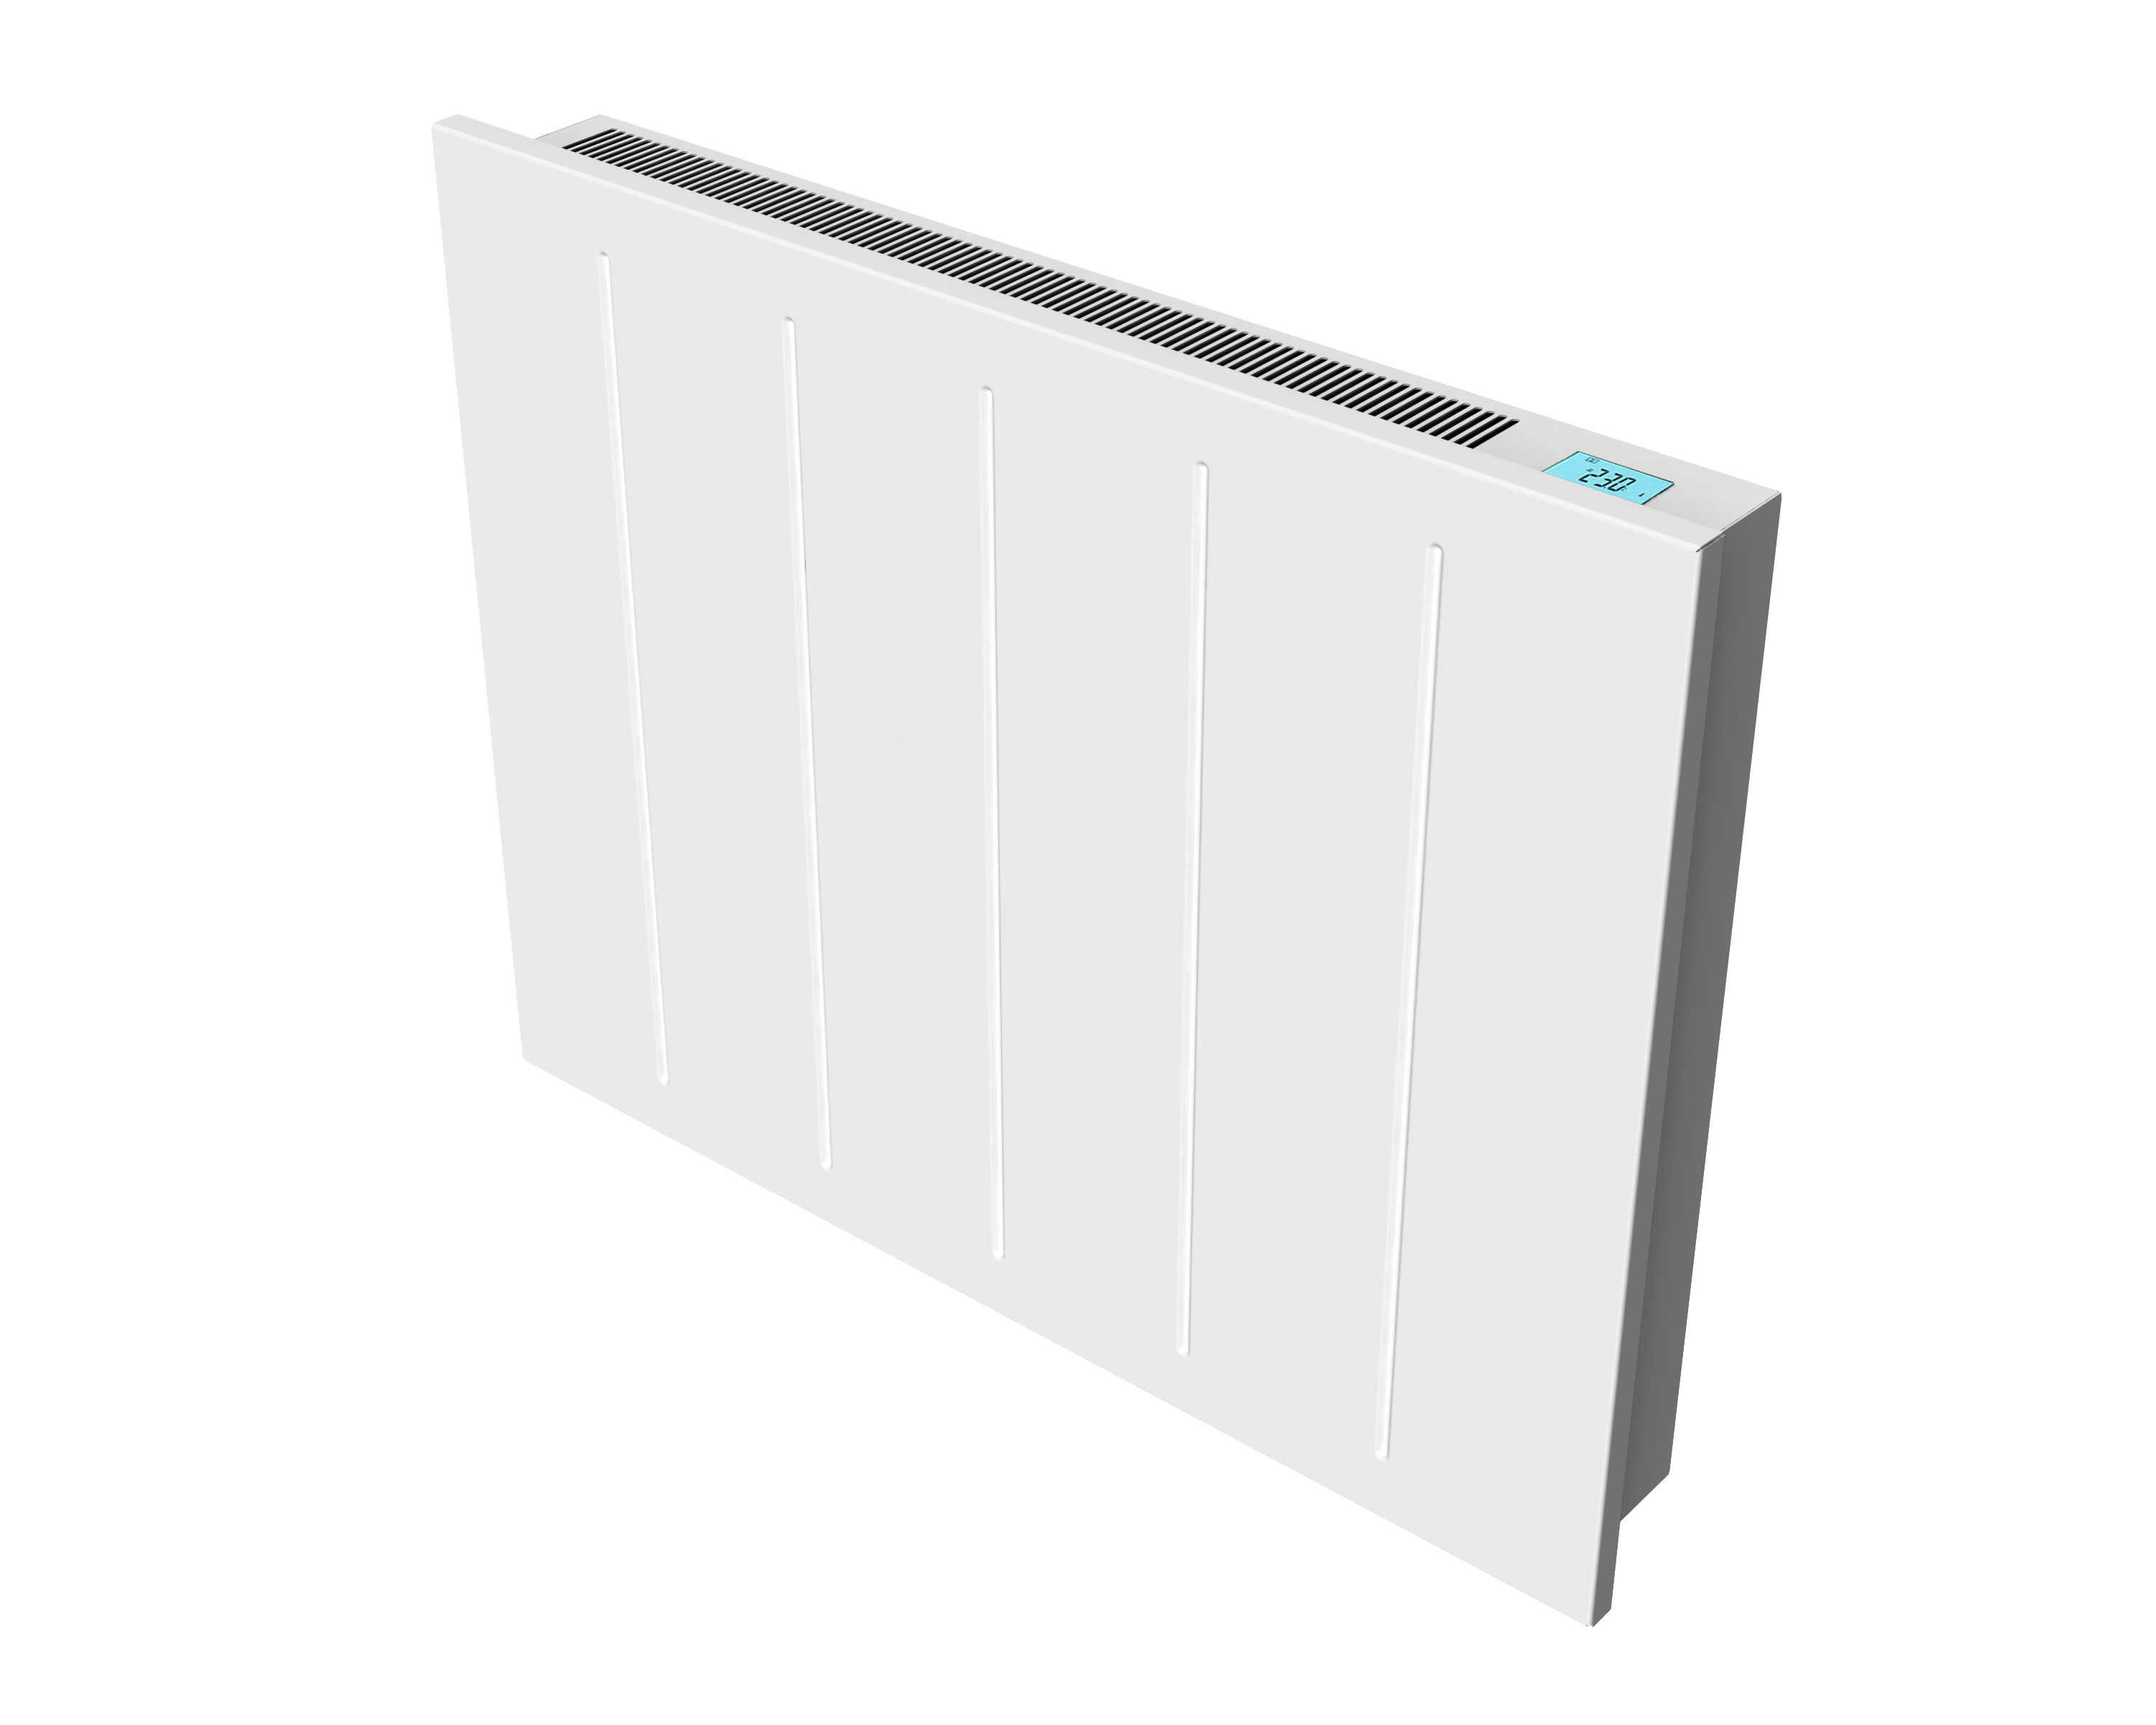 Electrorad introduces new smart panel heaters